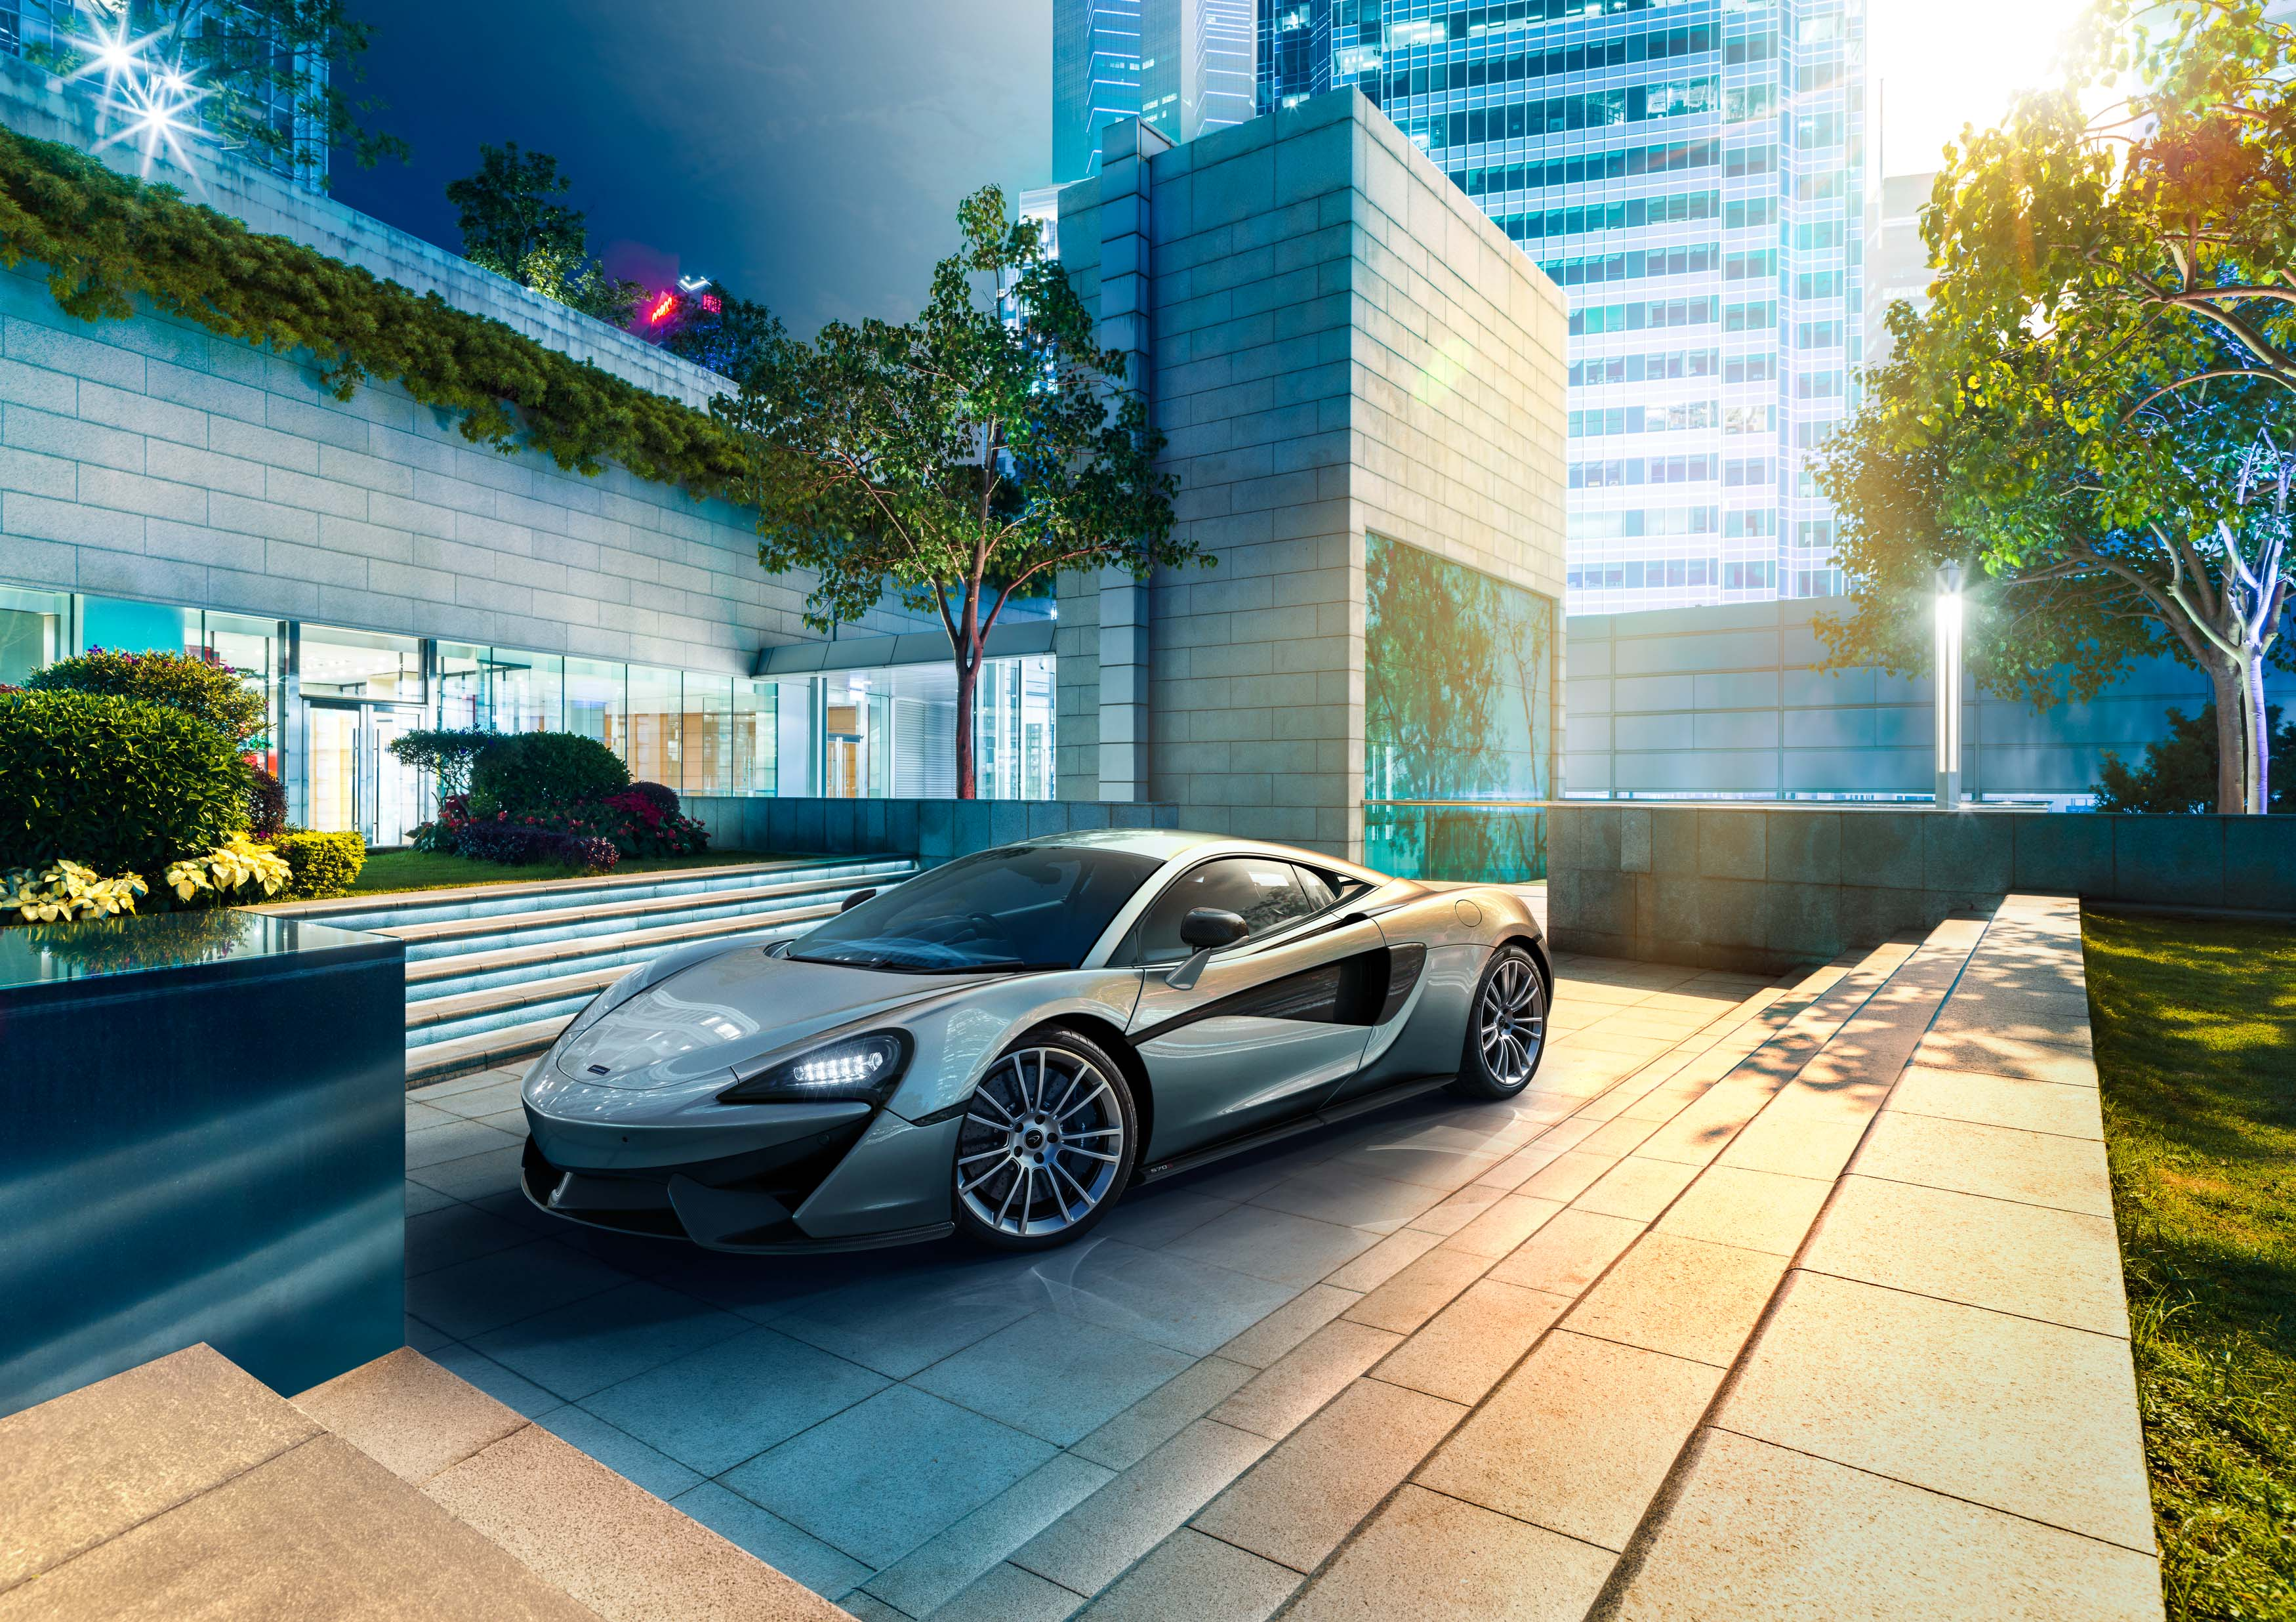 migs-foto-cgi-photographer-automotive-car-hong-kong-michael-lee-advtertising-commercial-photography-McLaren-570S-Silver-Front-3q